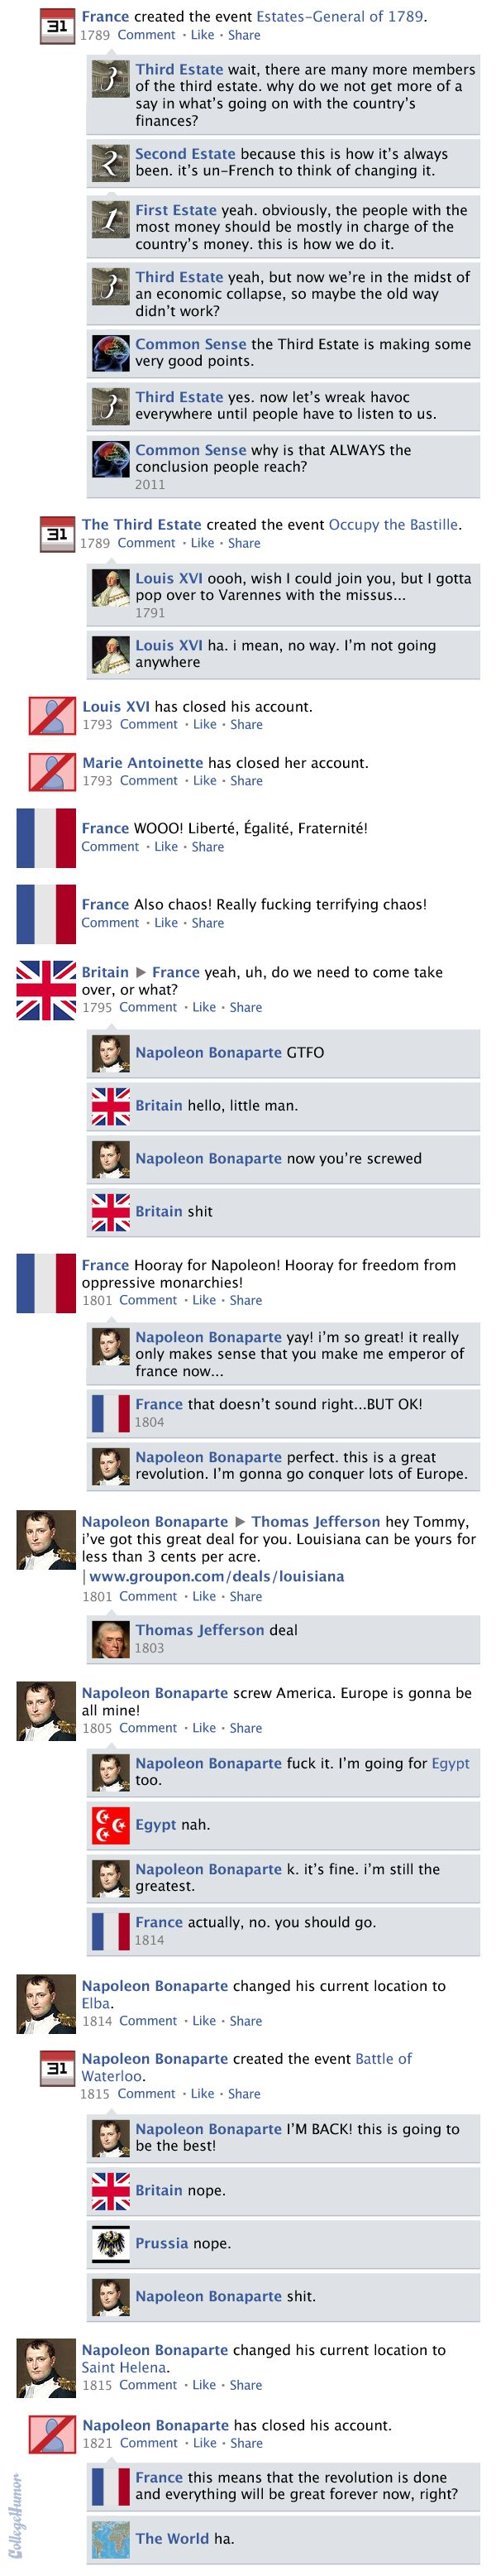 French Revolution---I would obviously have to change a lot of the language, but this could work for middle or high school